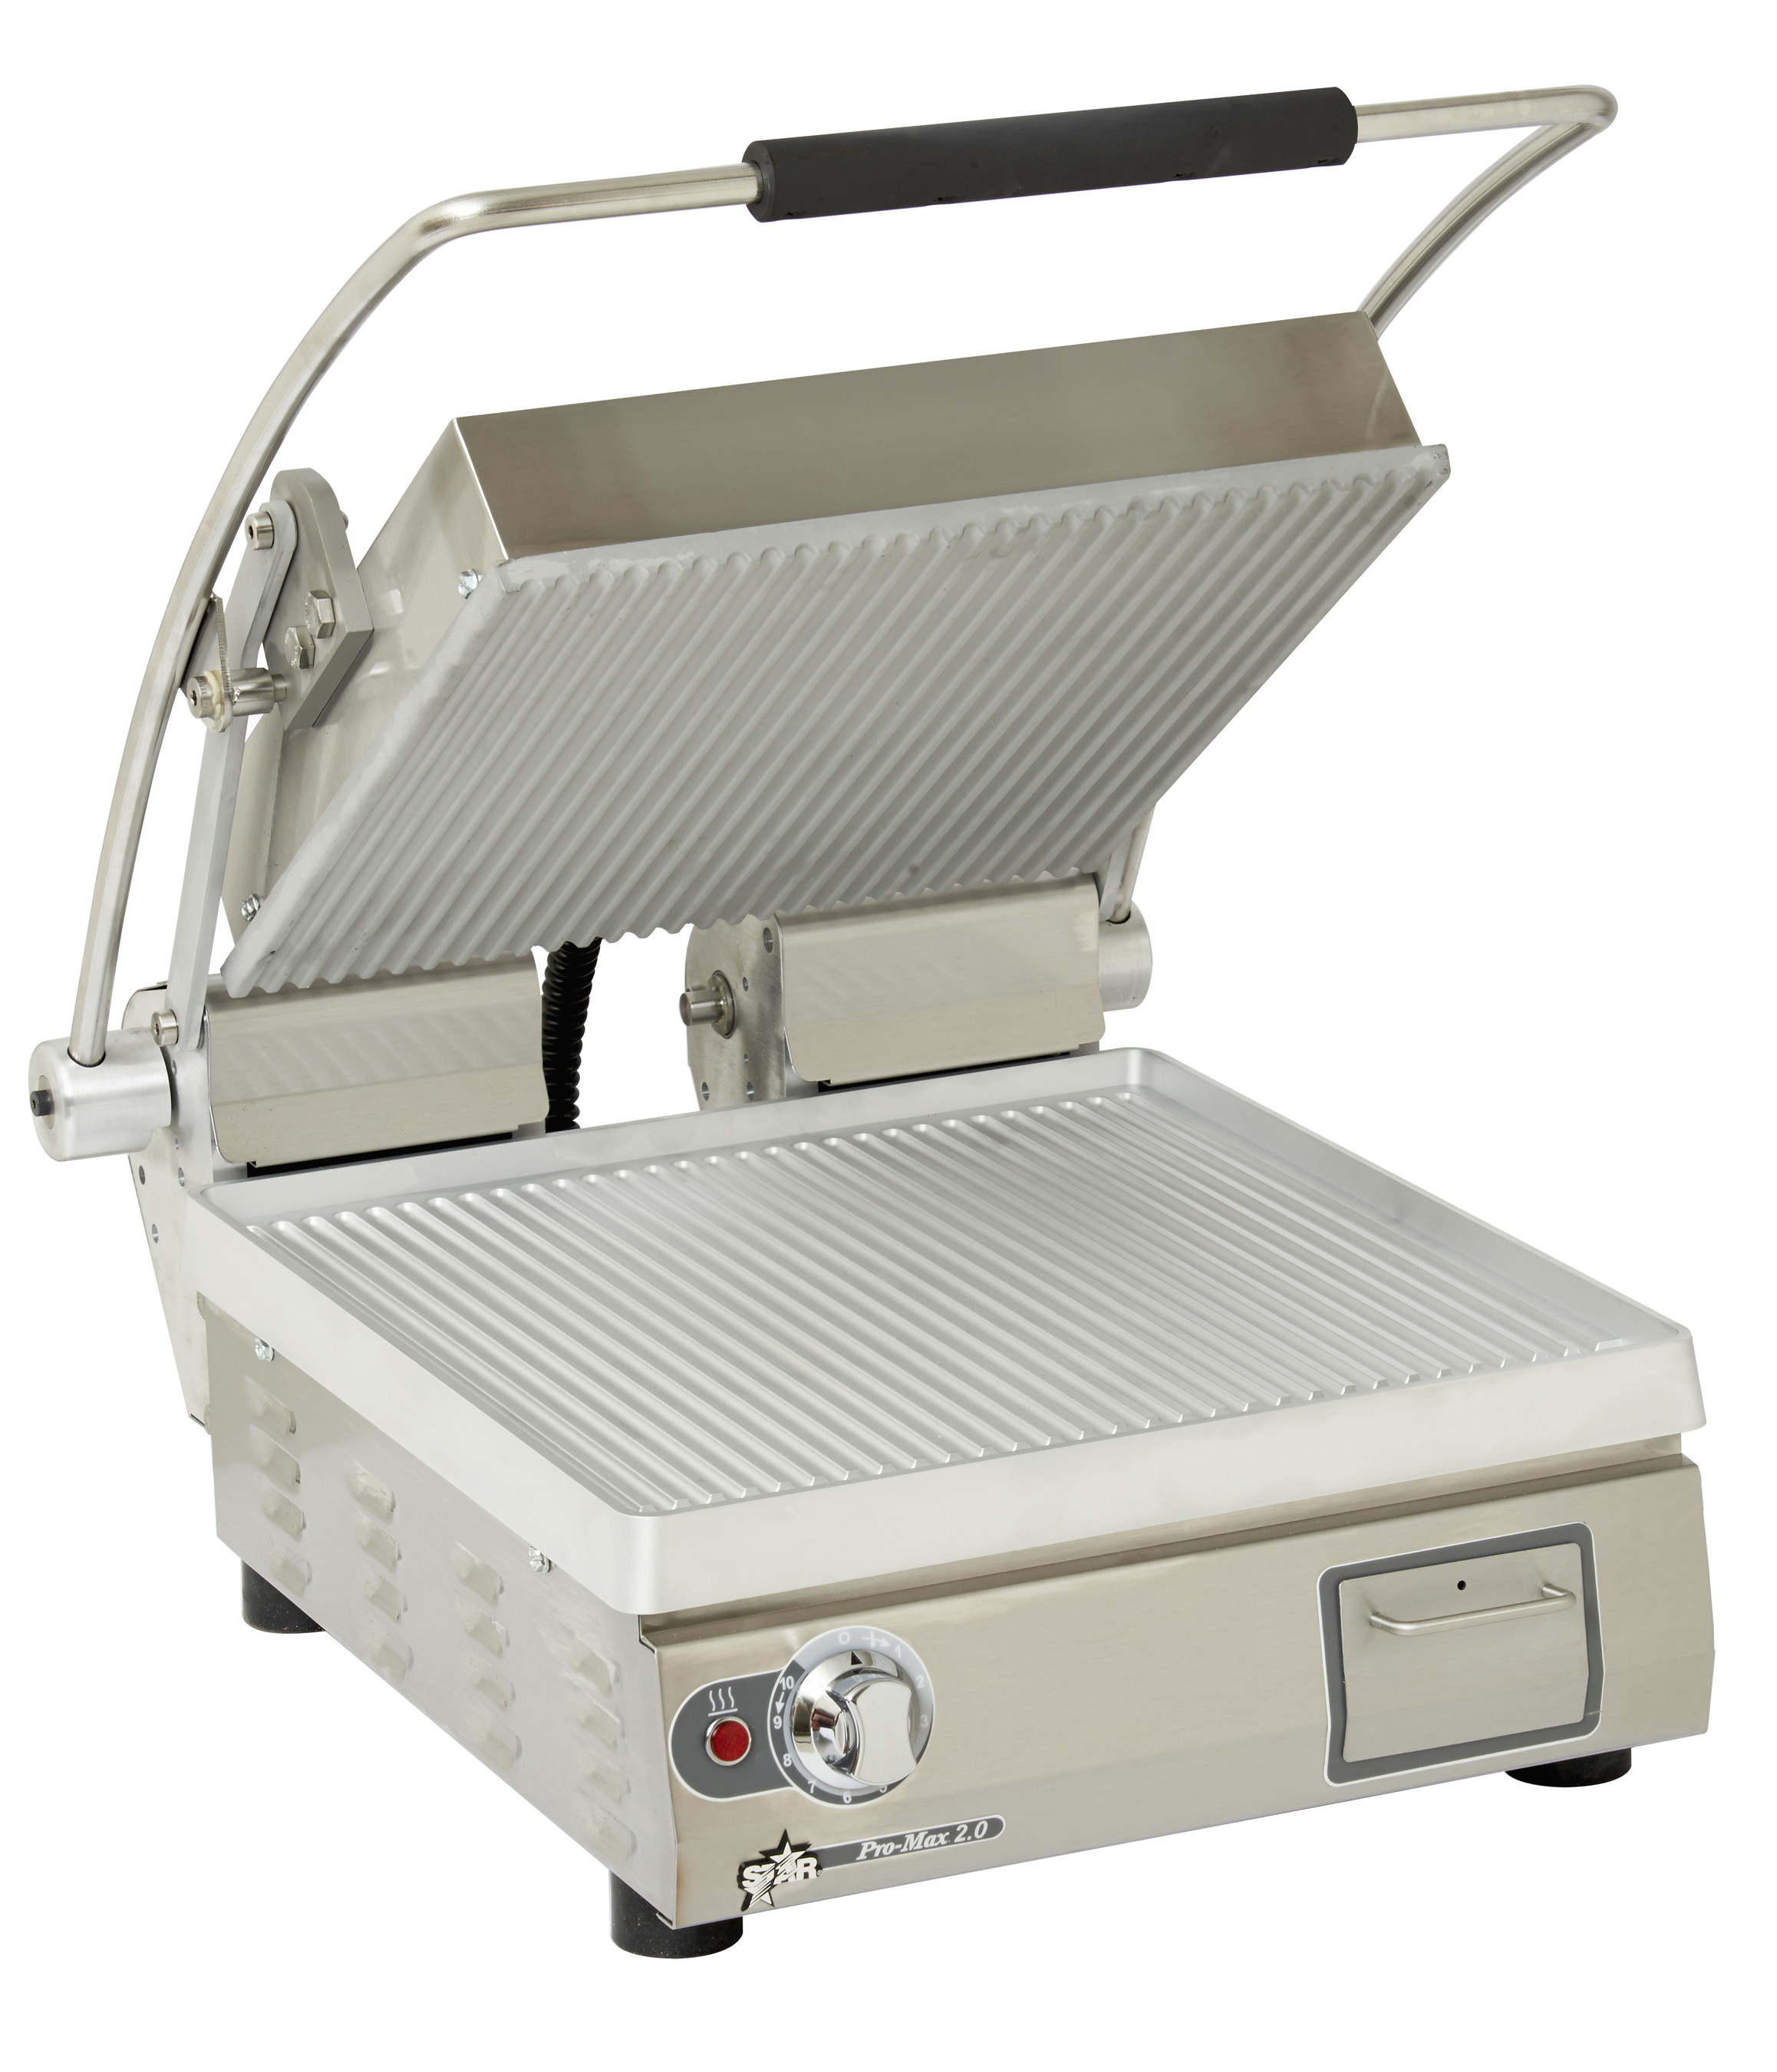 Pro-max 2.0 sandwich grill grooved-0